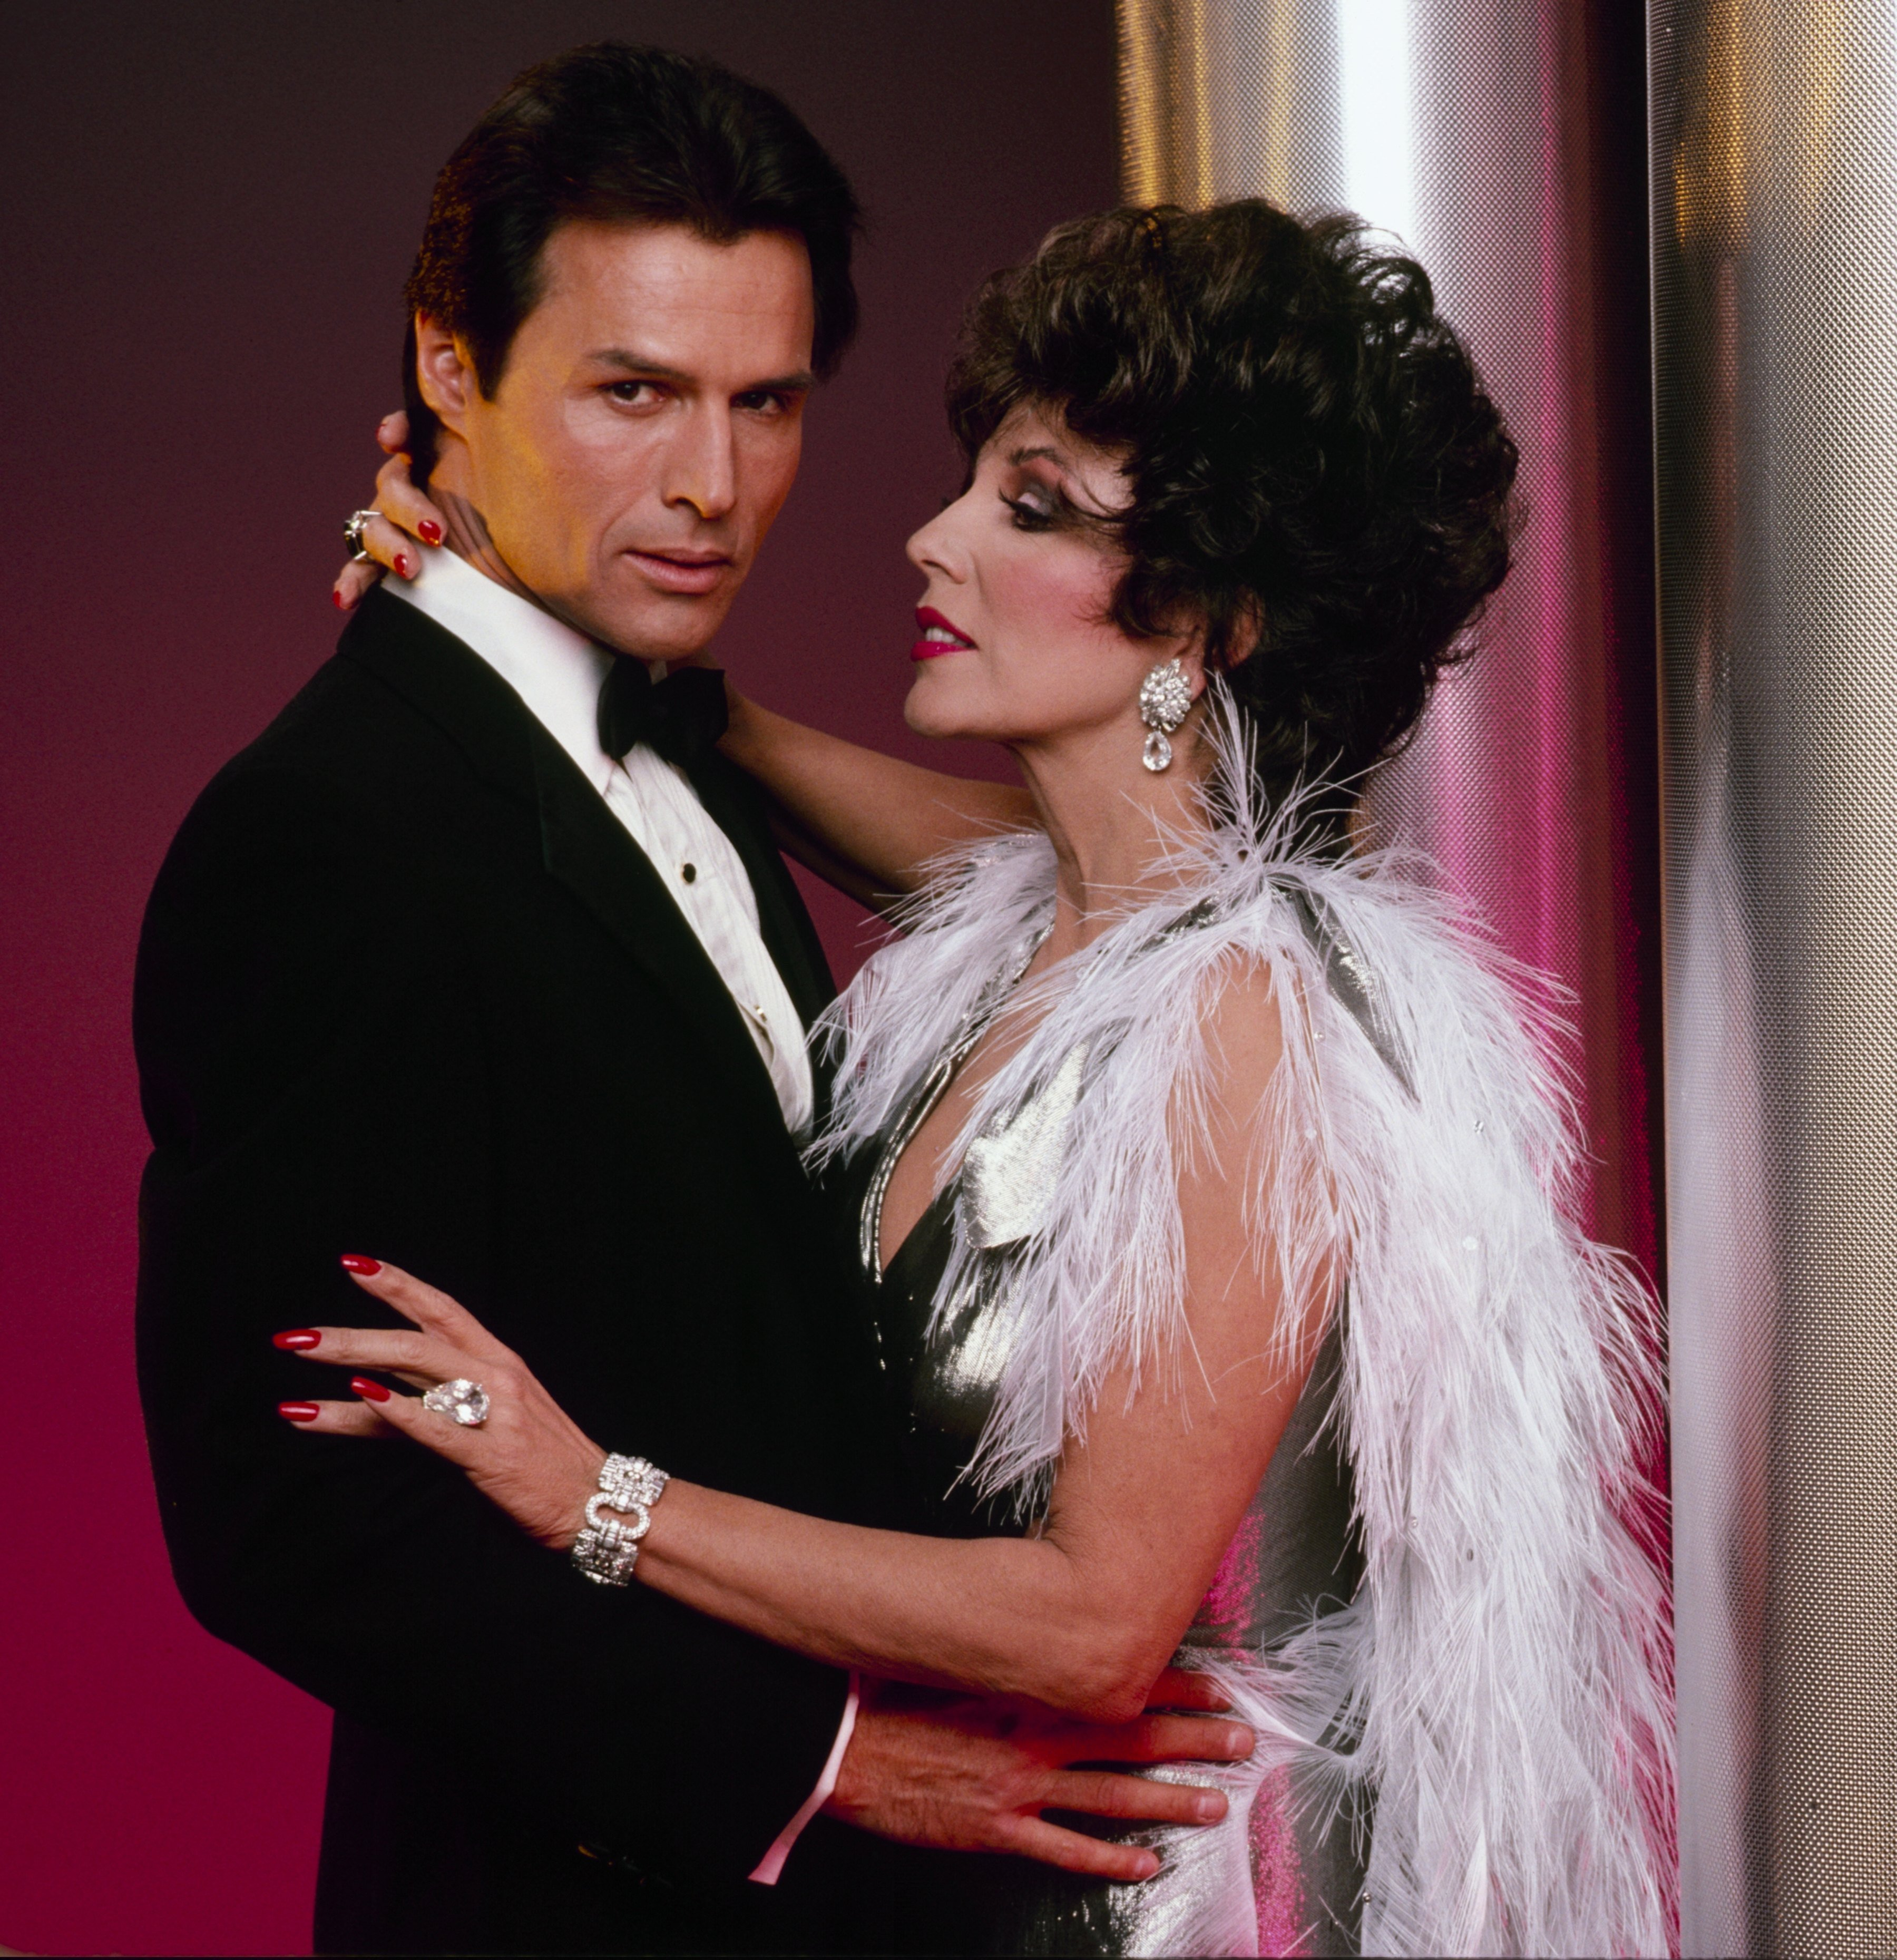 Dynasty Fotoshooting-Joan Collins mit Michael Nader   Quelle: Getty Images